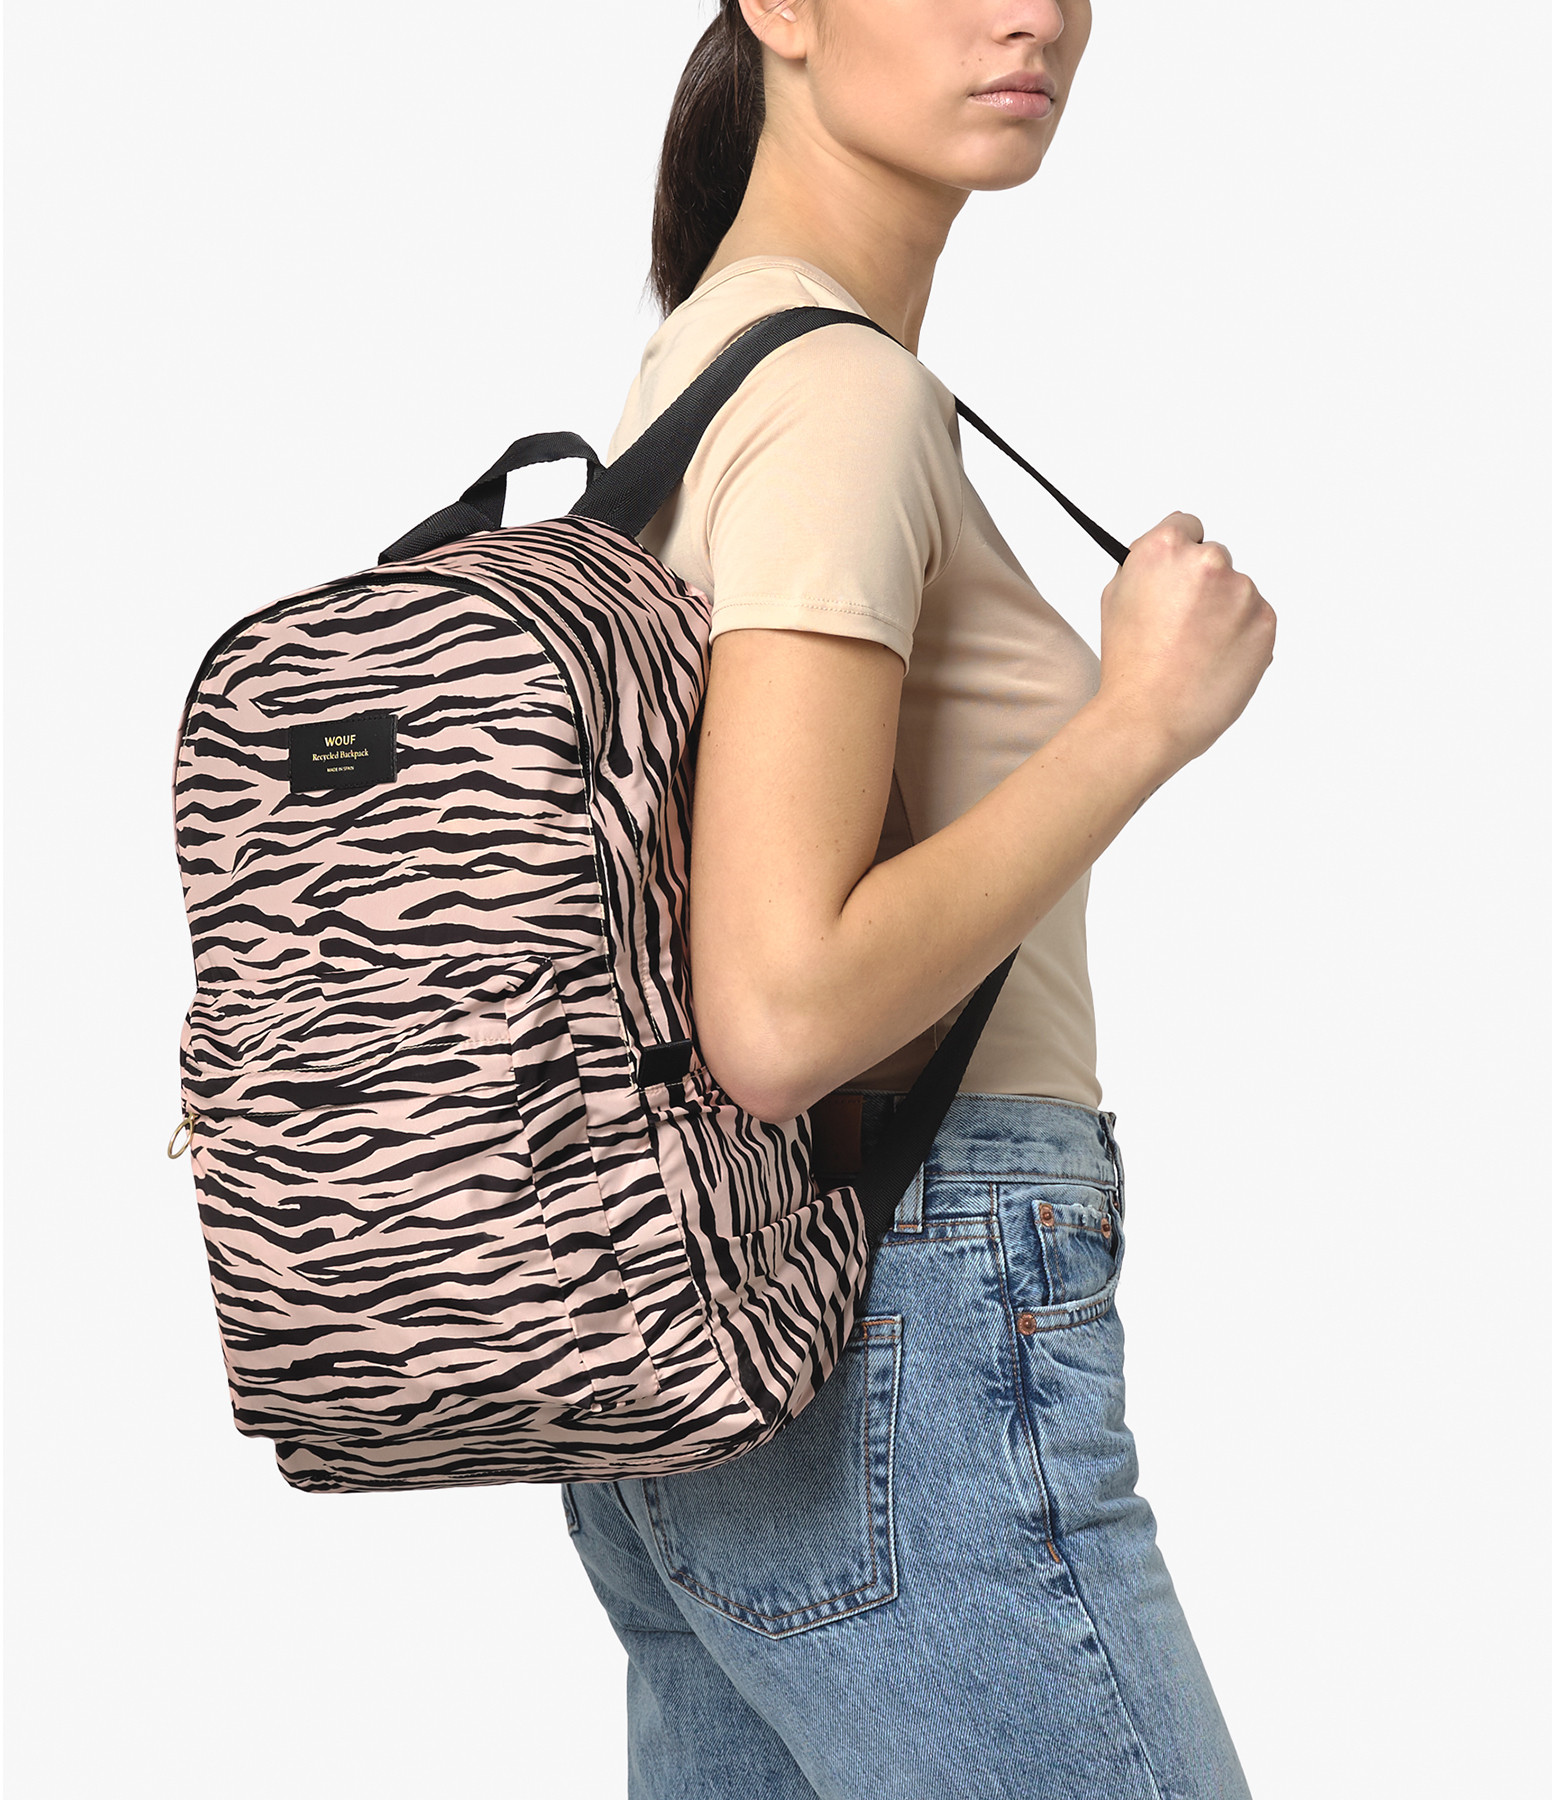 WOUF - Sac à Dos Recyclé Soft Tiger